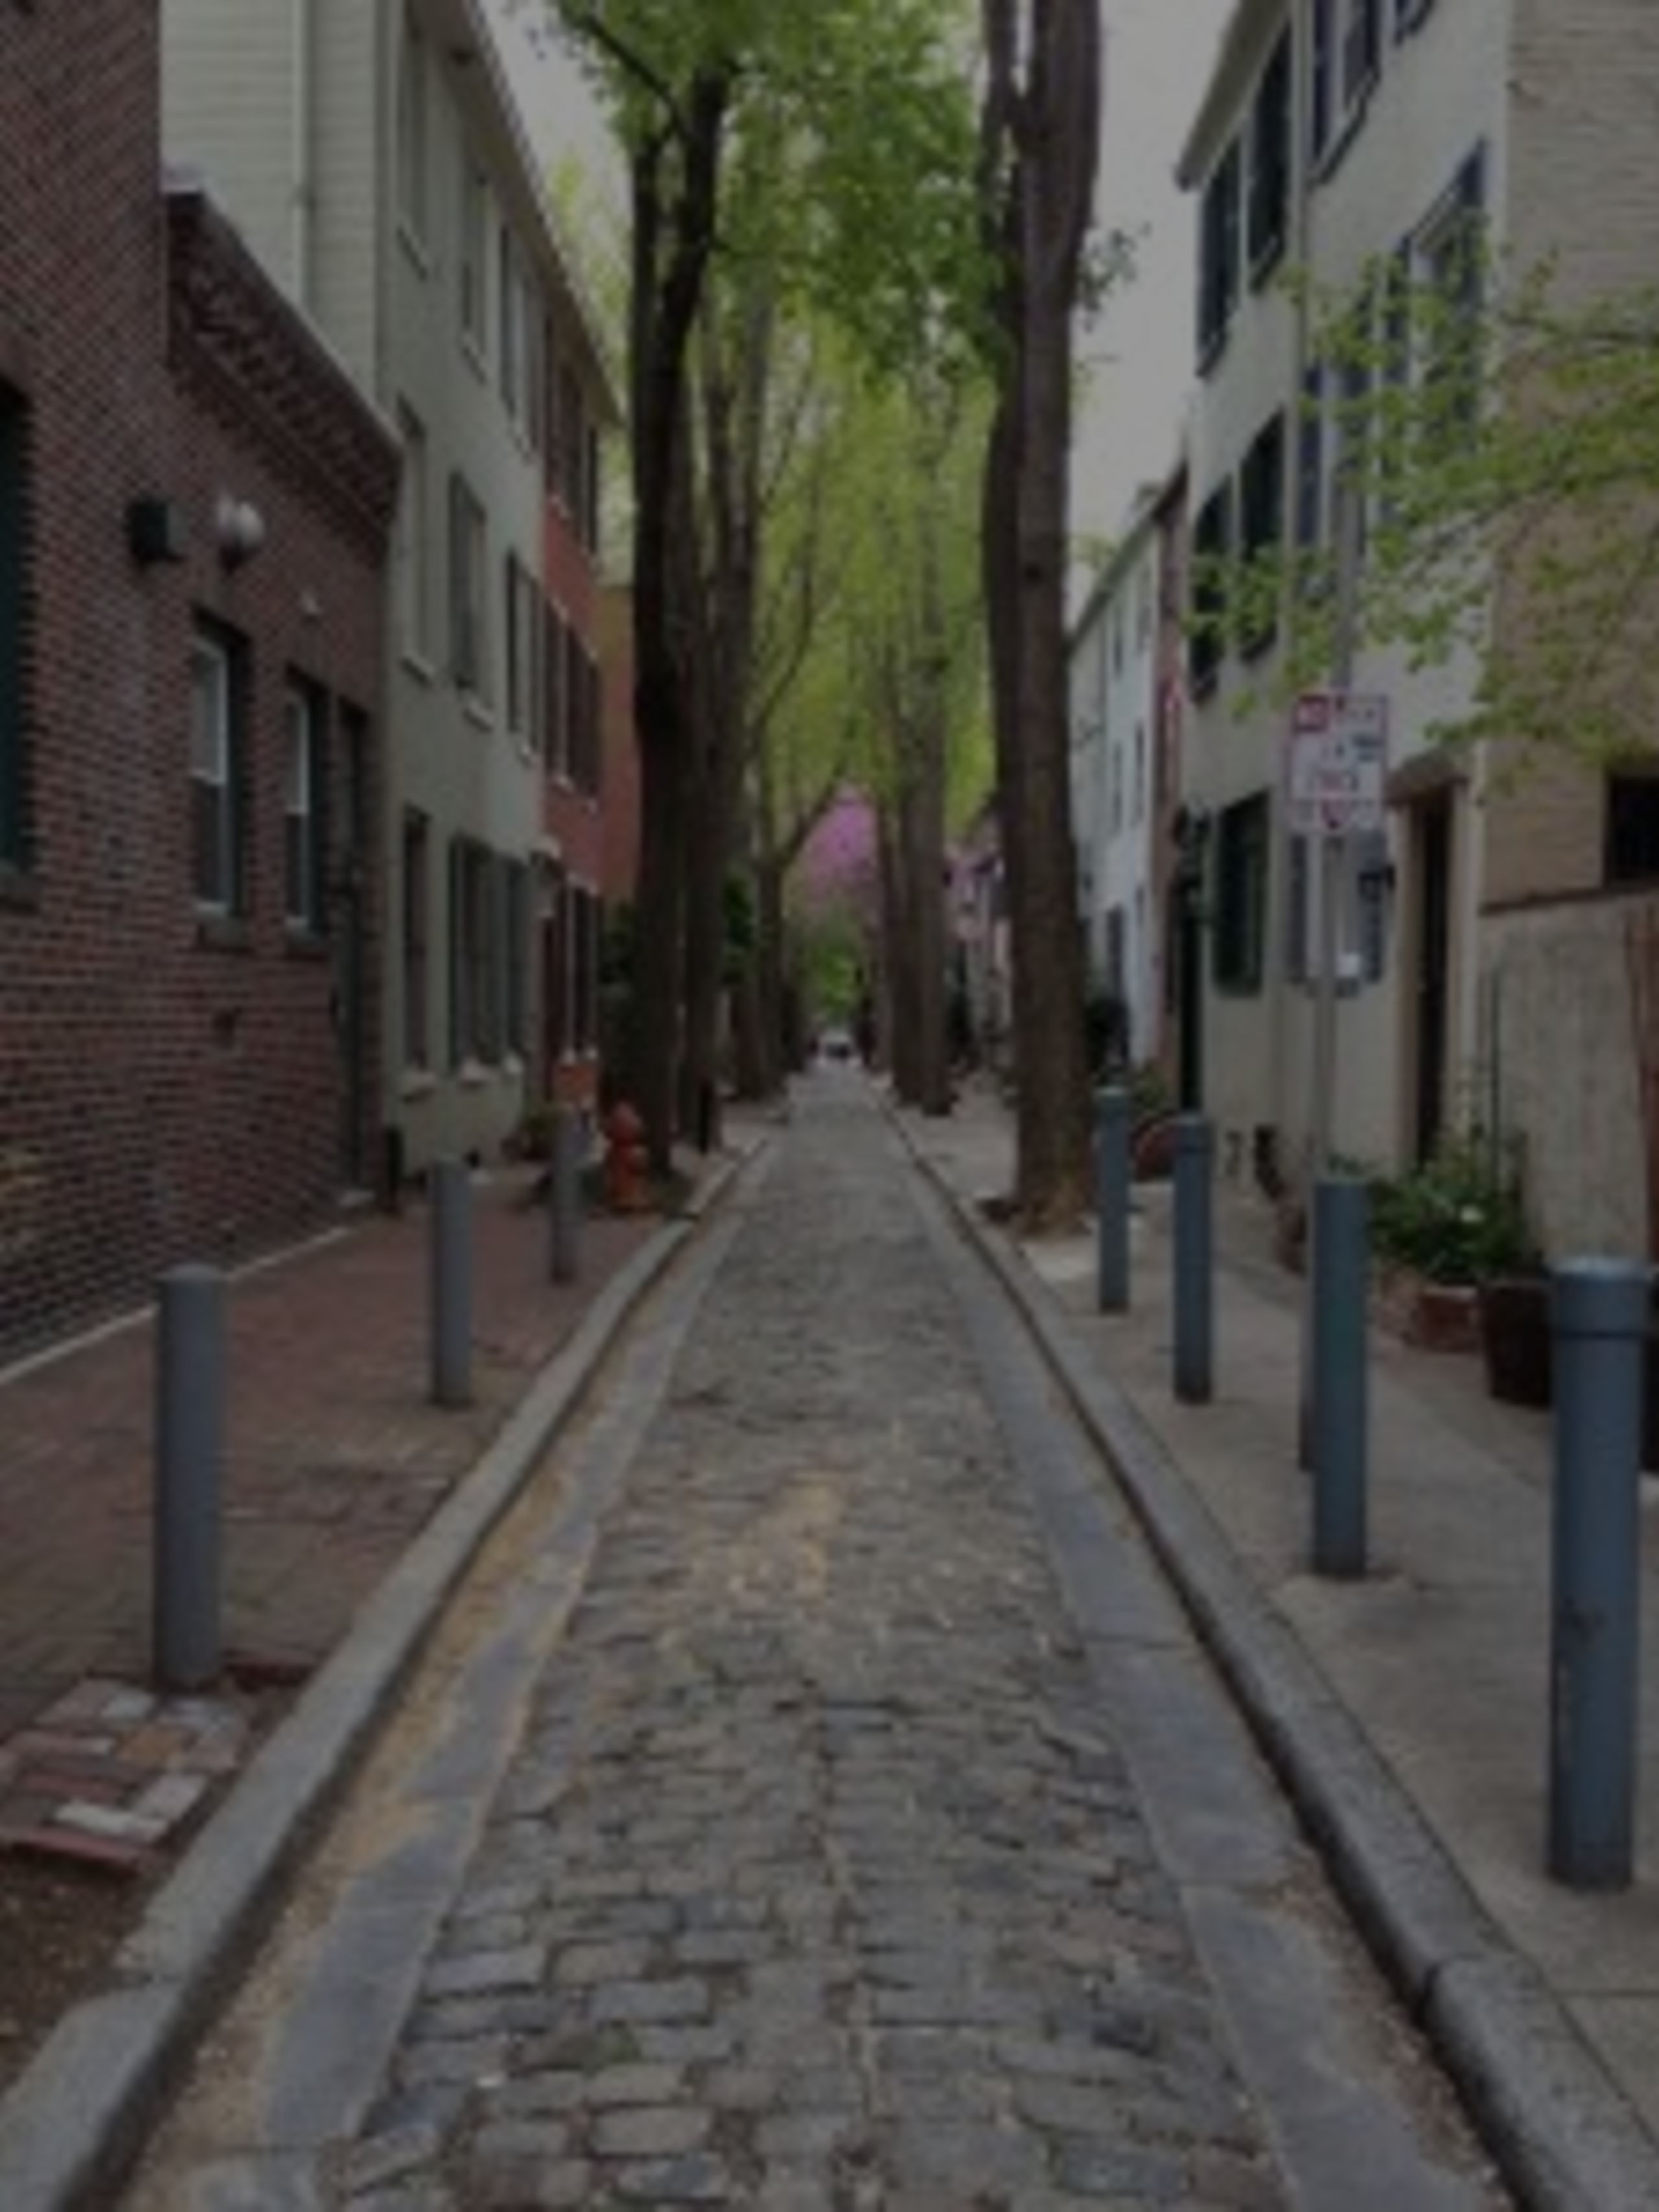 What's the most picturesque block in Center City?